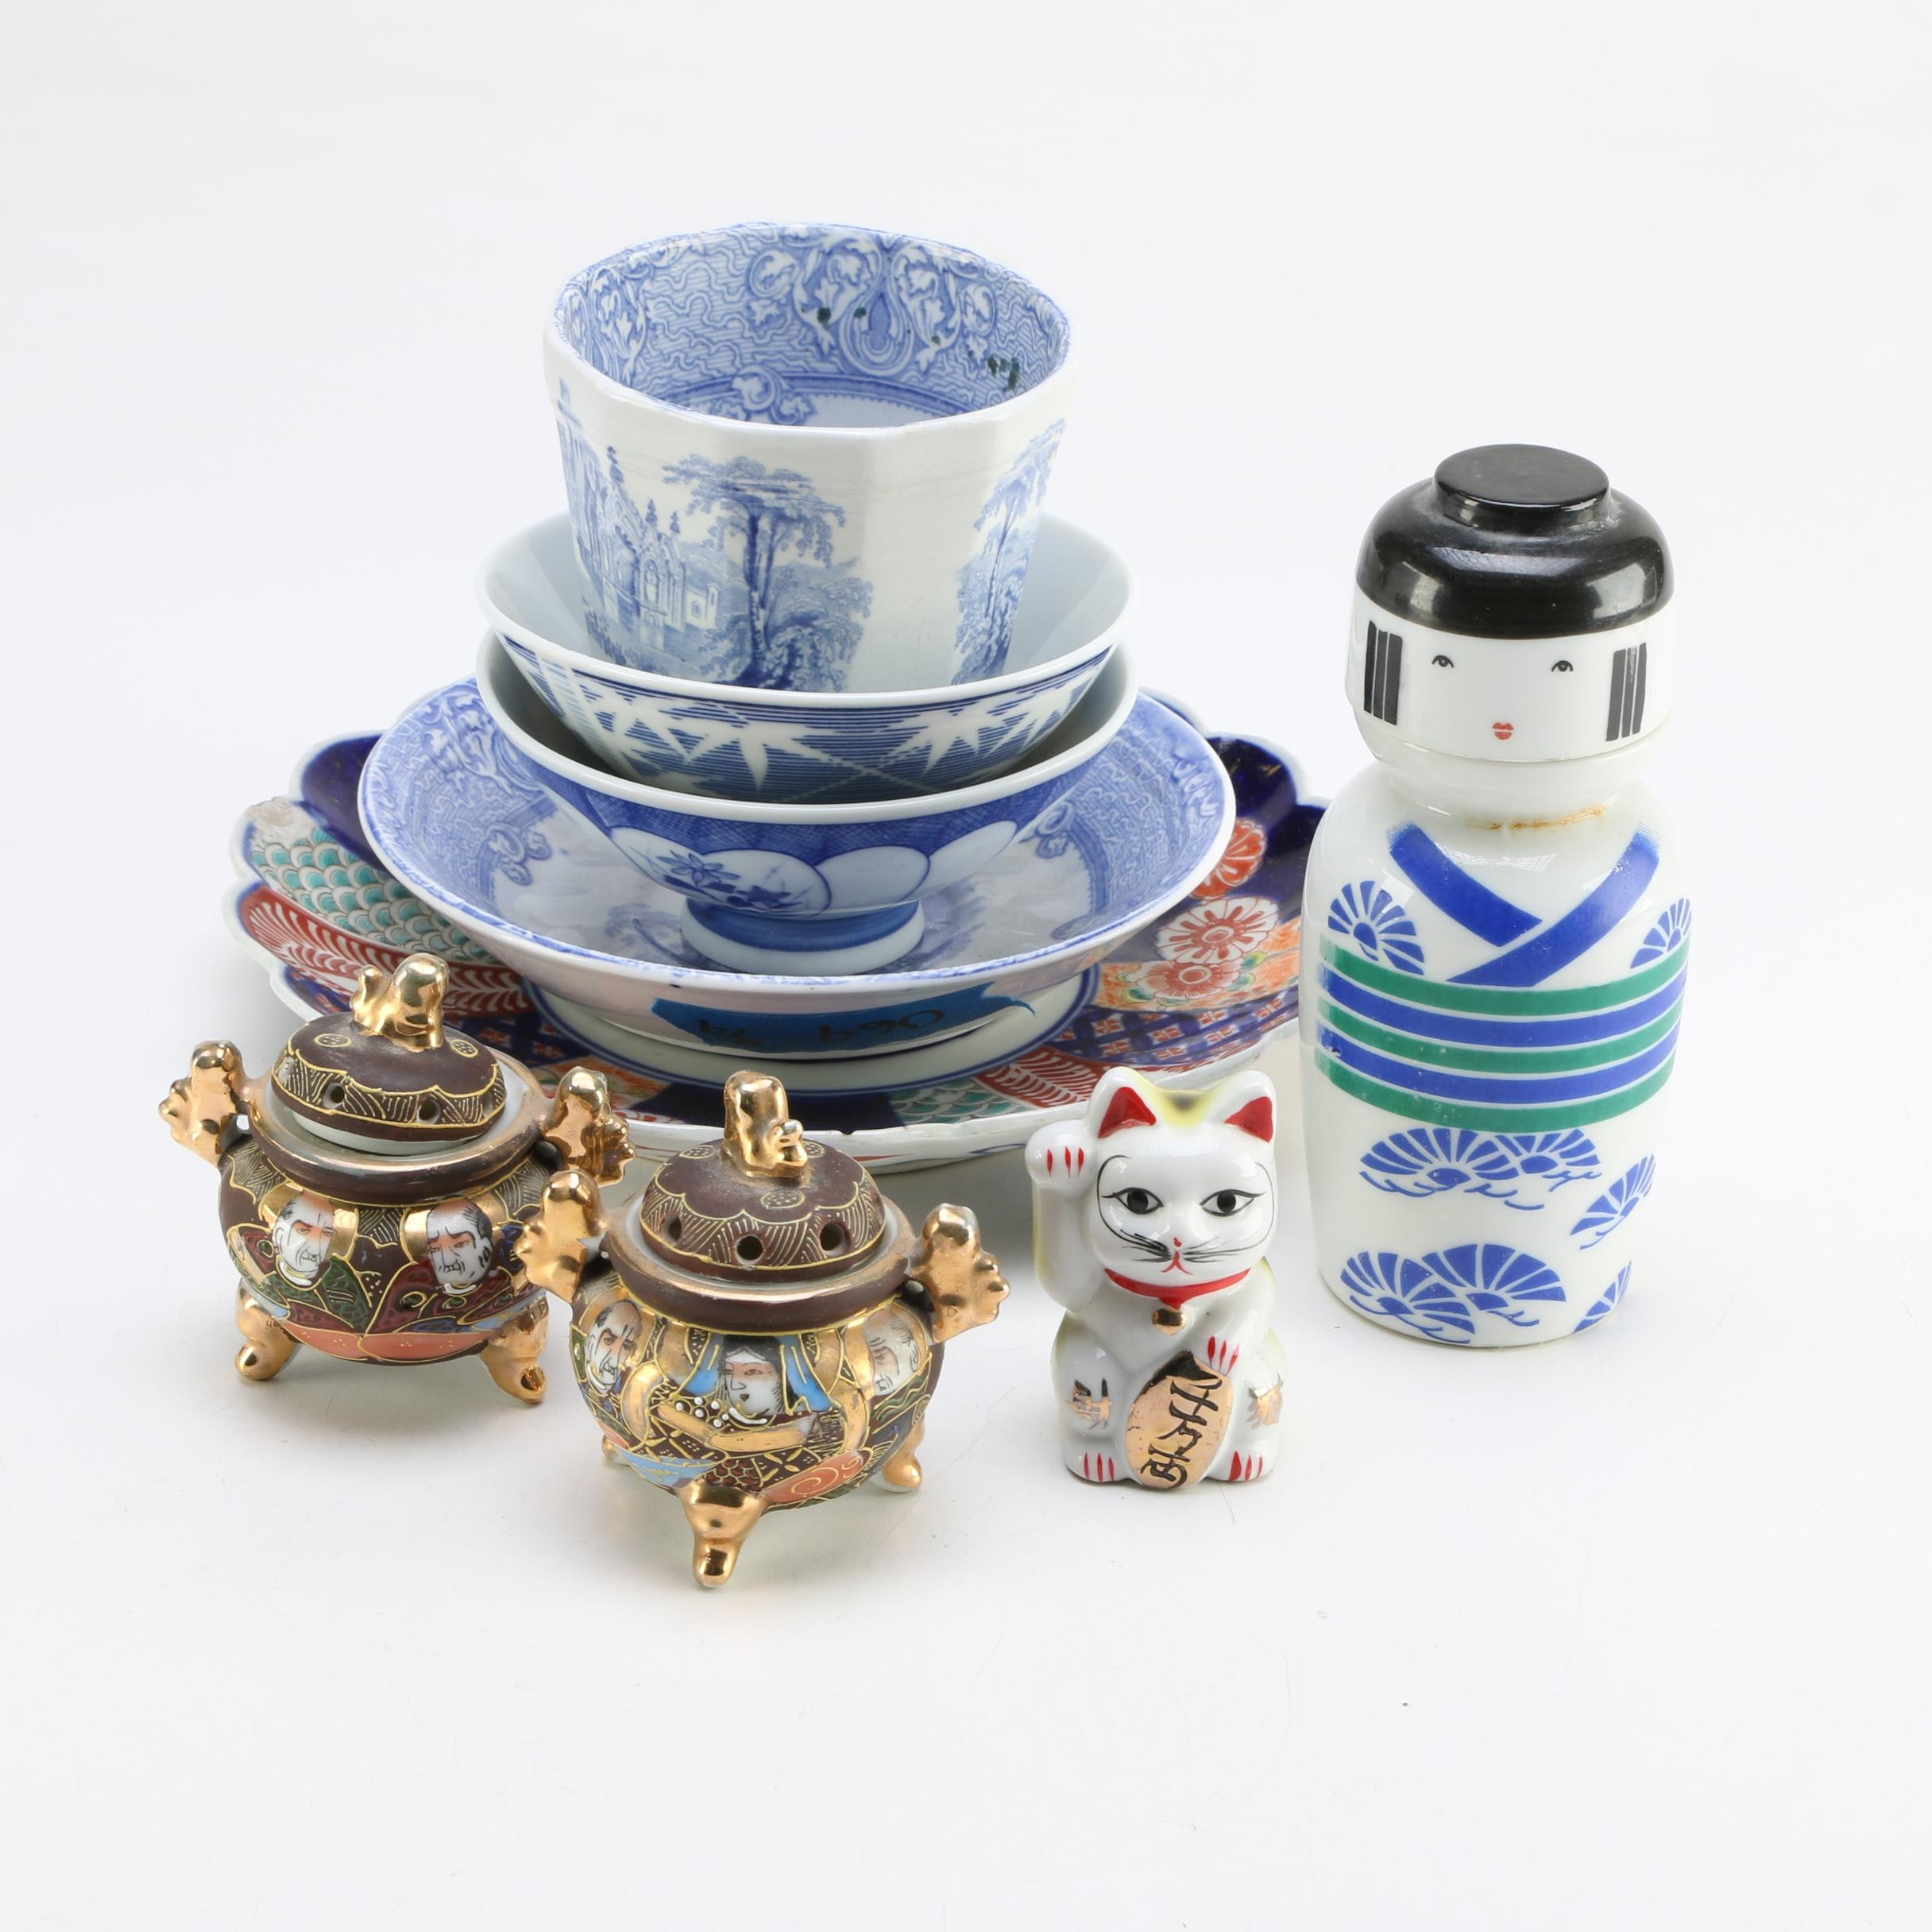 East Asian Tableware and Decorative Items